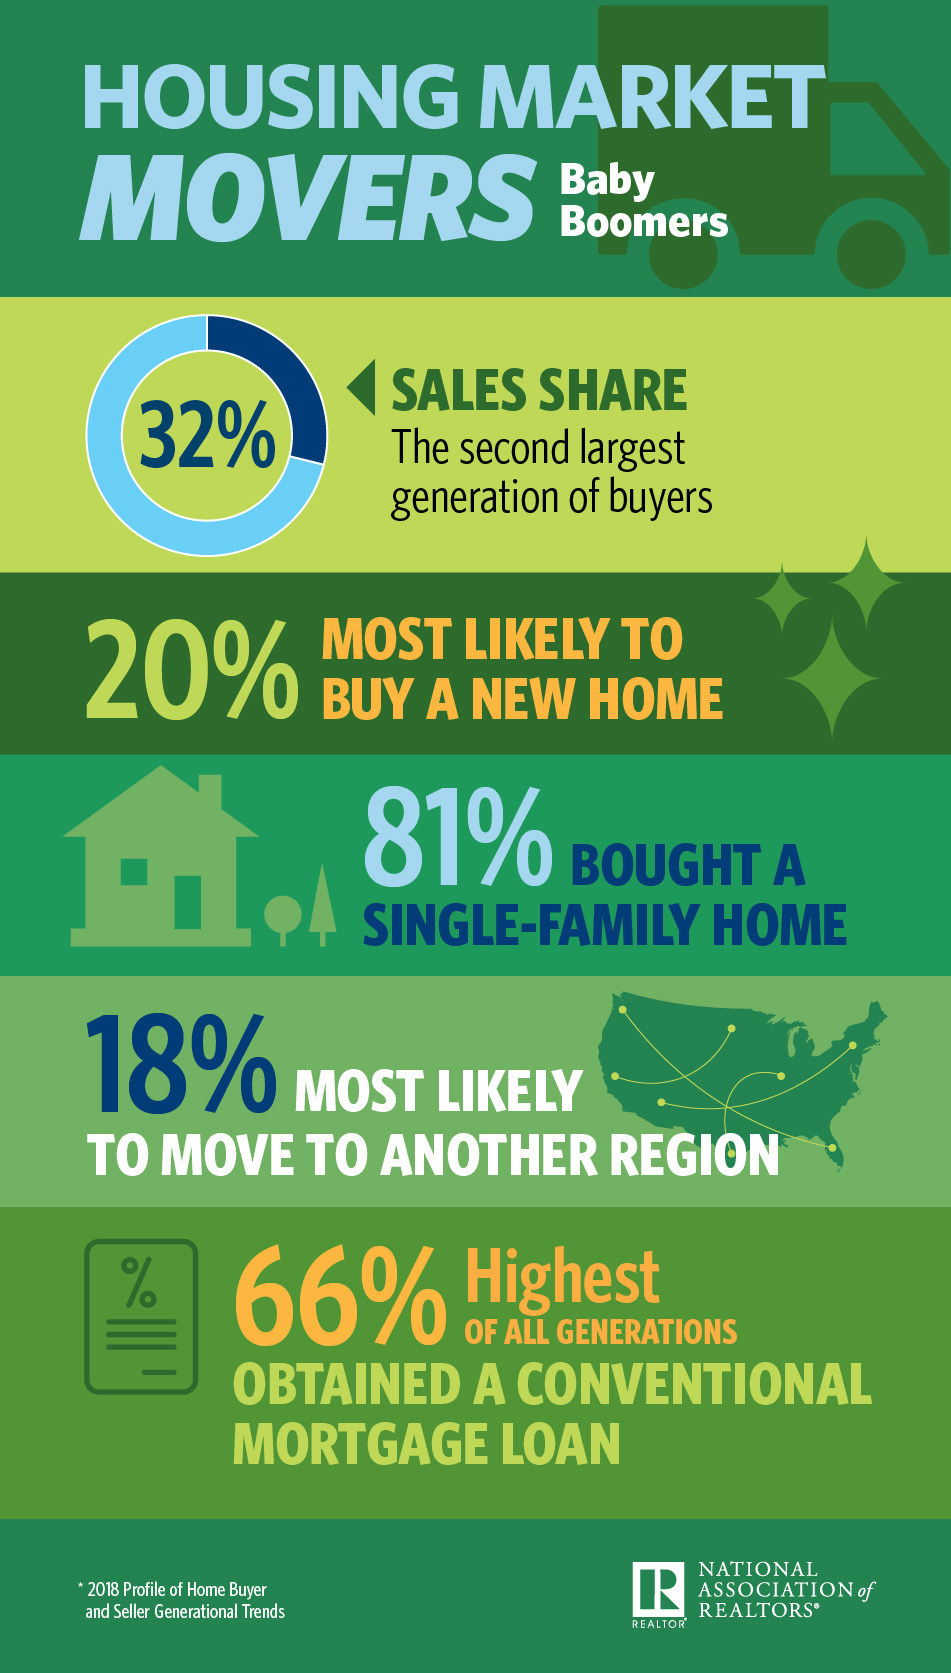 NAR Baby Boomers Infographic